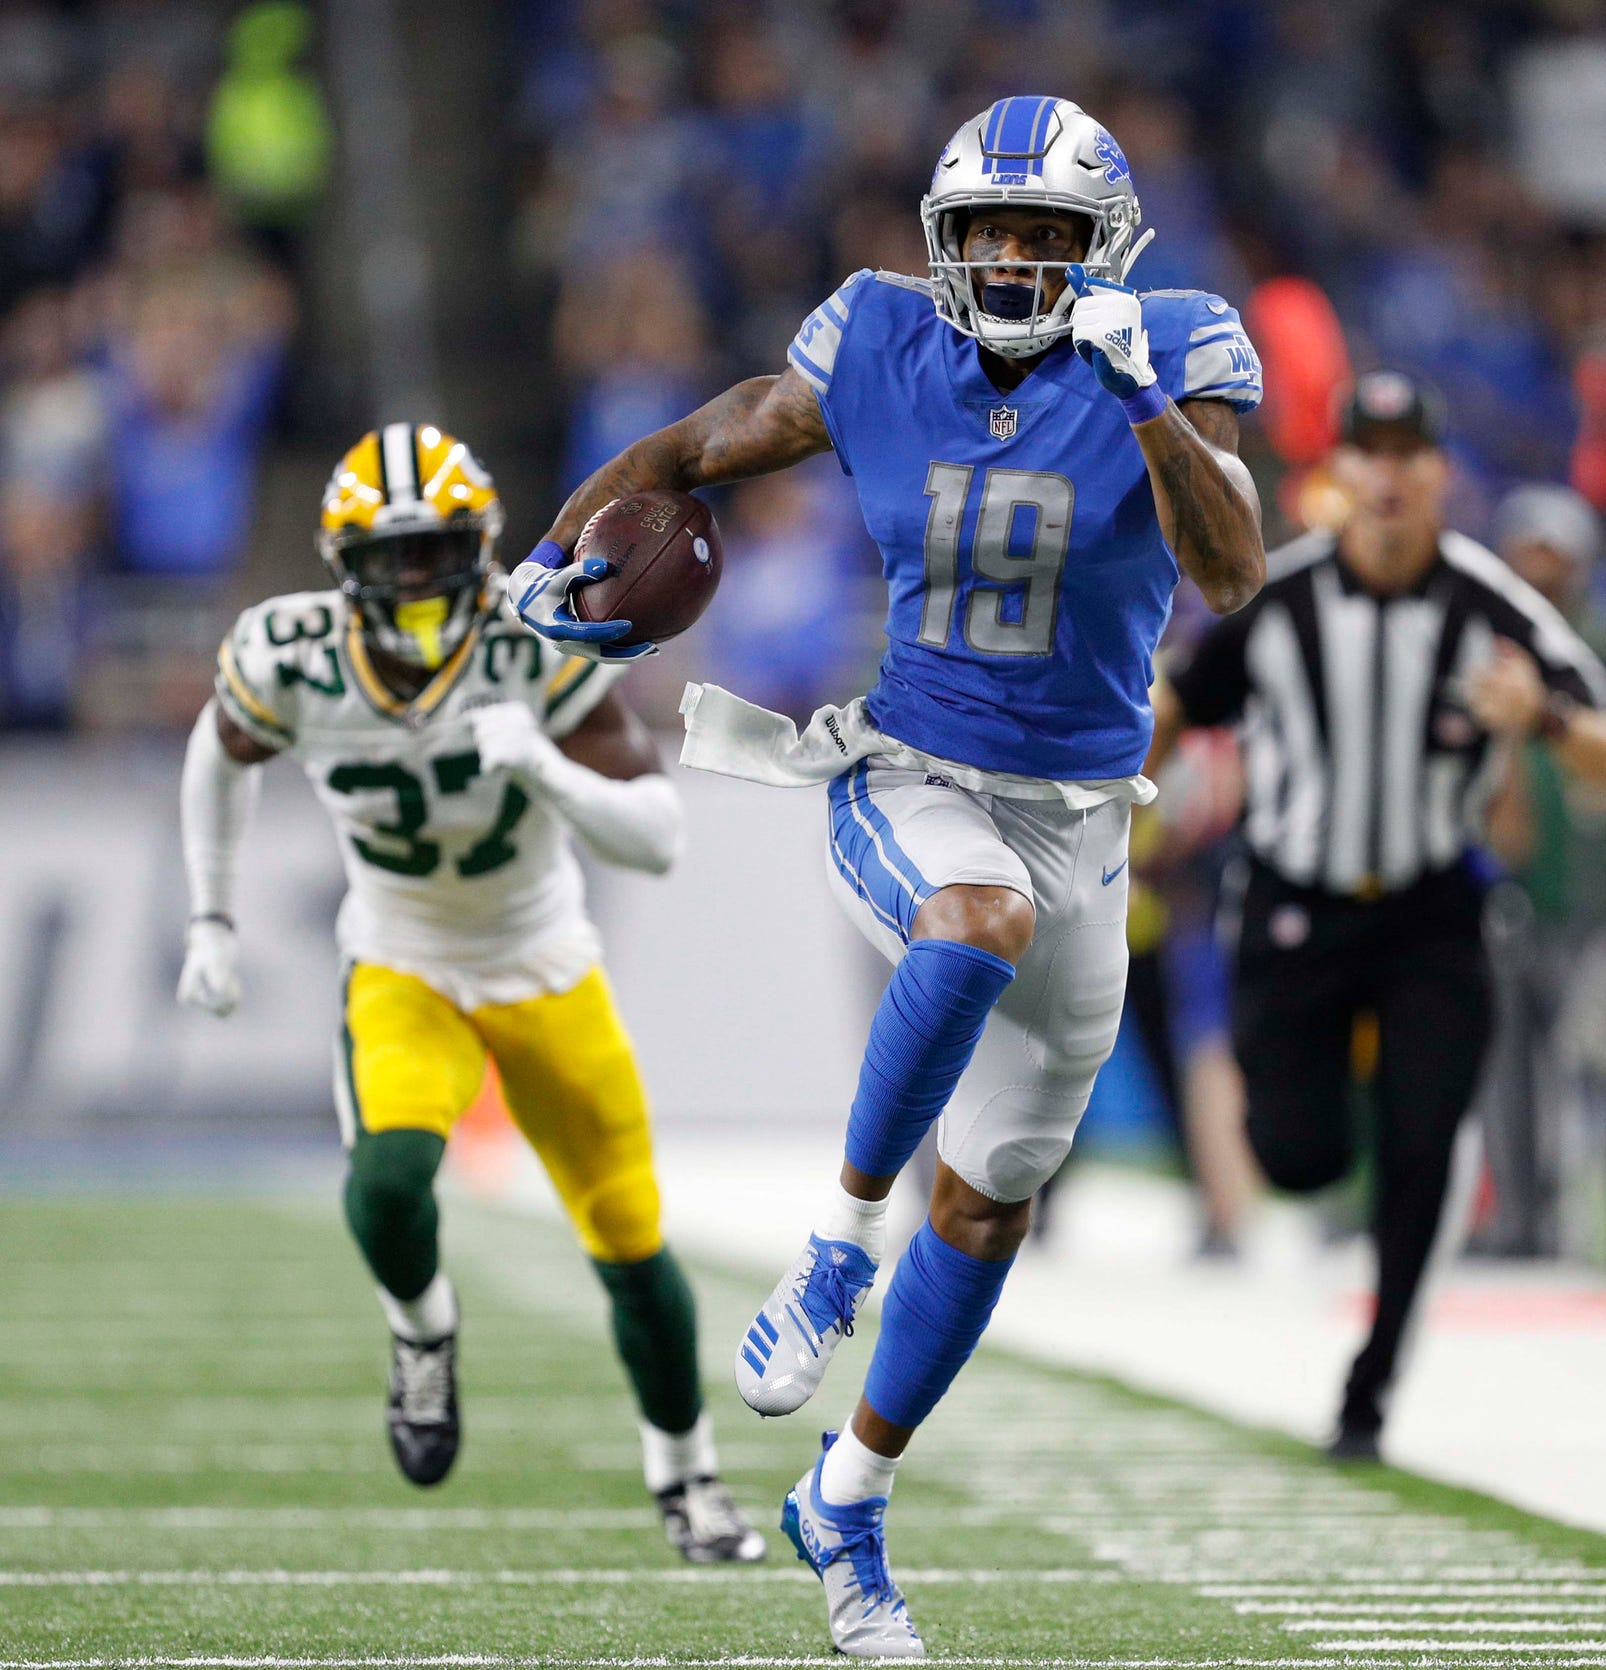 Lions wide receiver Kenny Golladay runs after a catch during the first quarter against Green Bay Packers cornerback Josh Jackson at Ford Field.